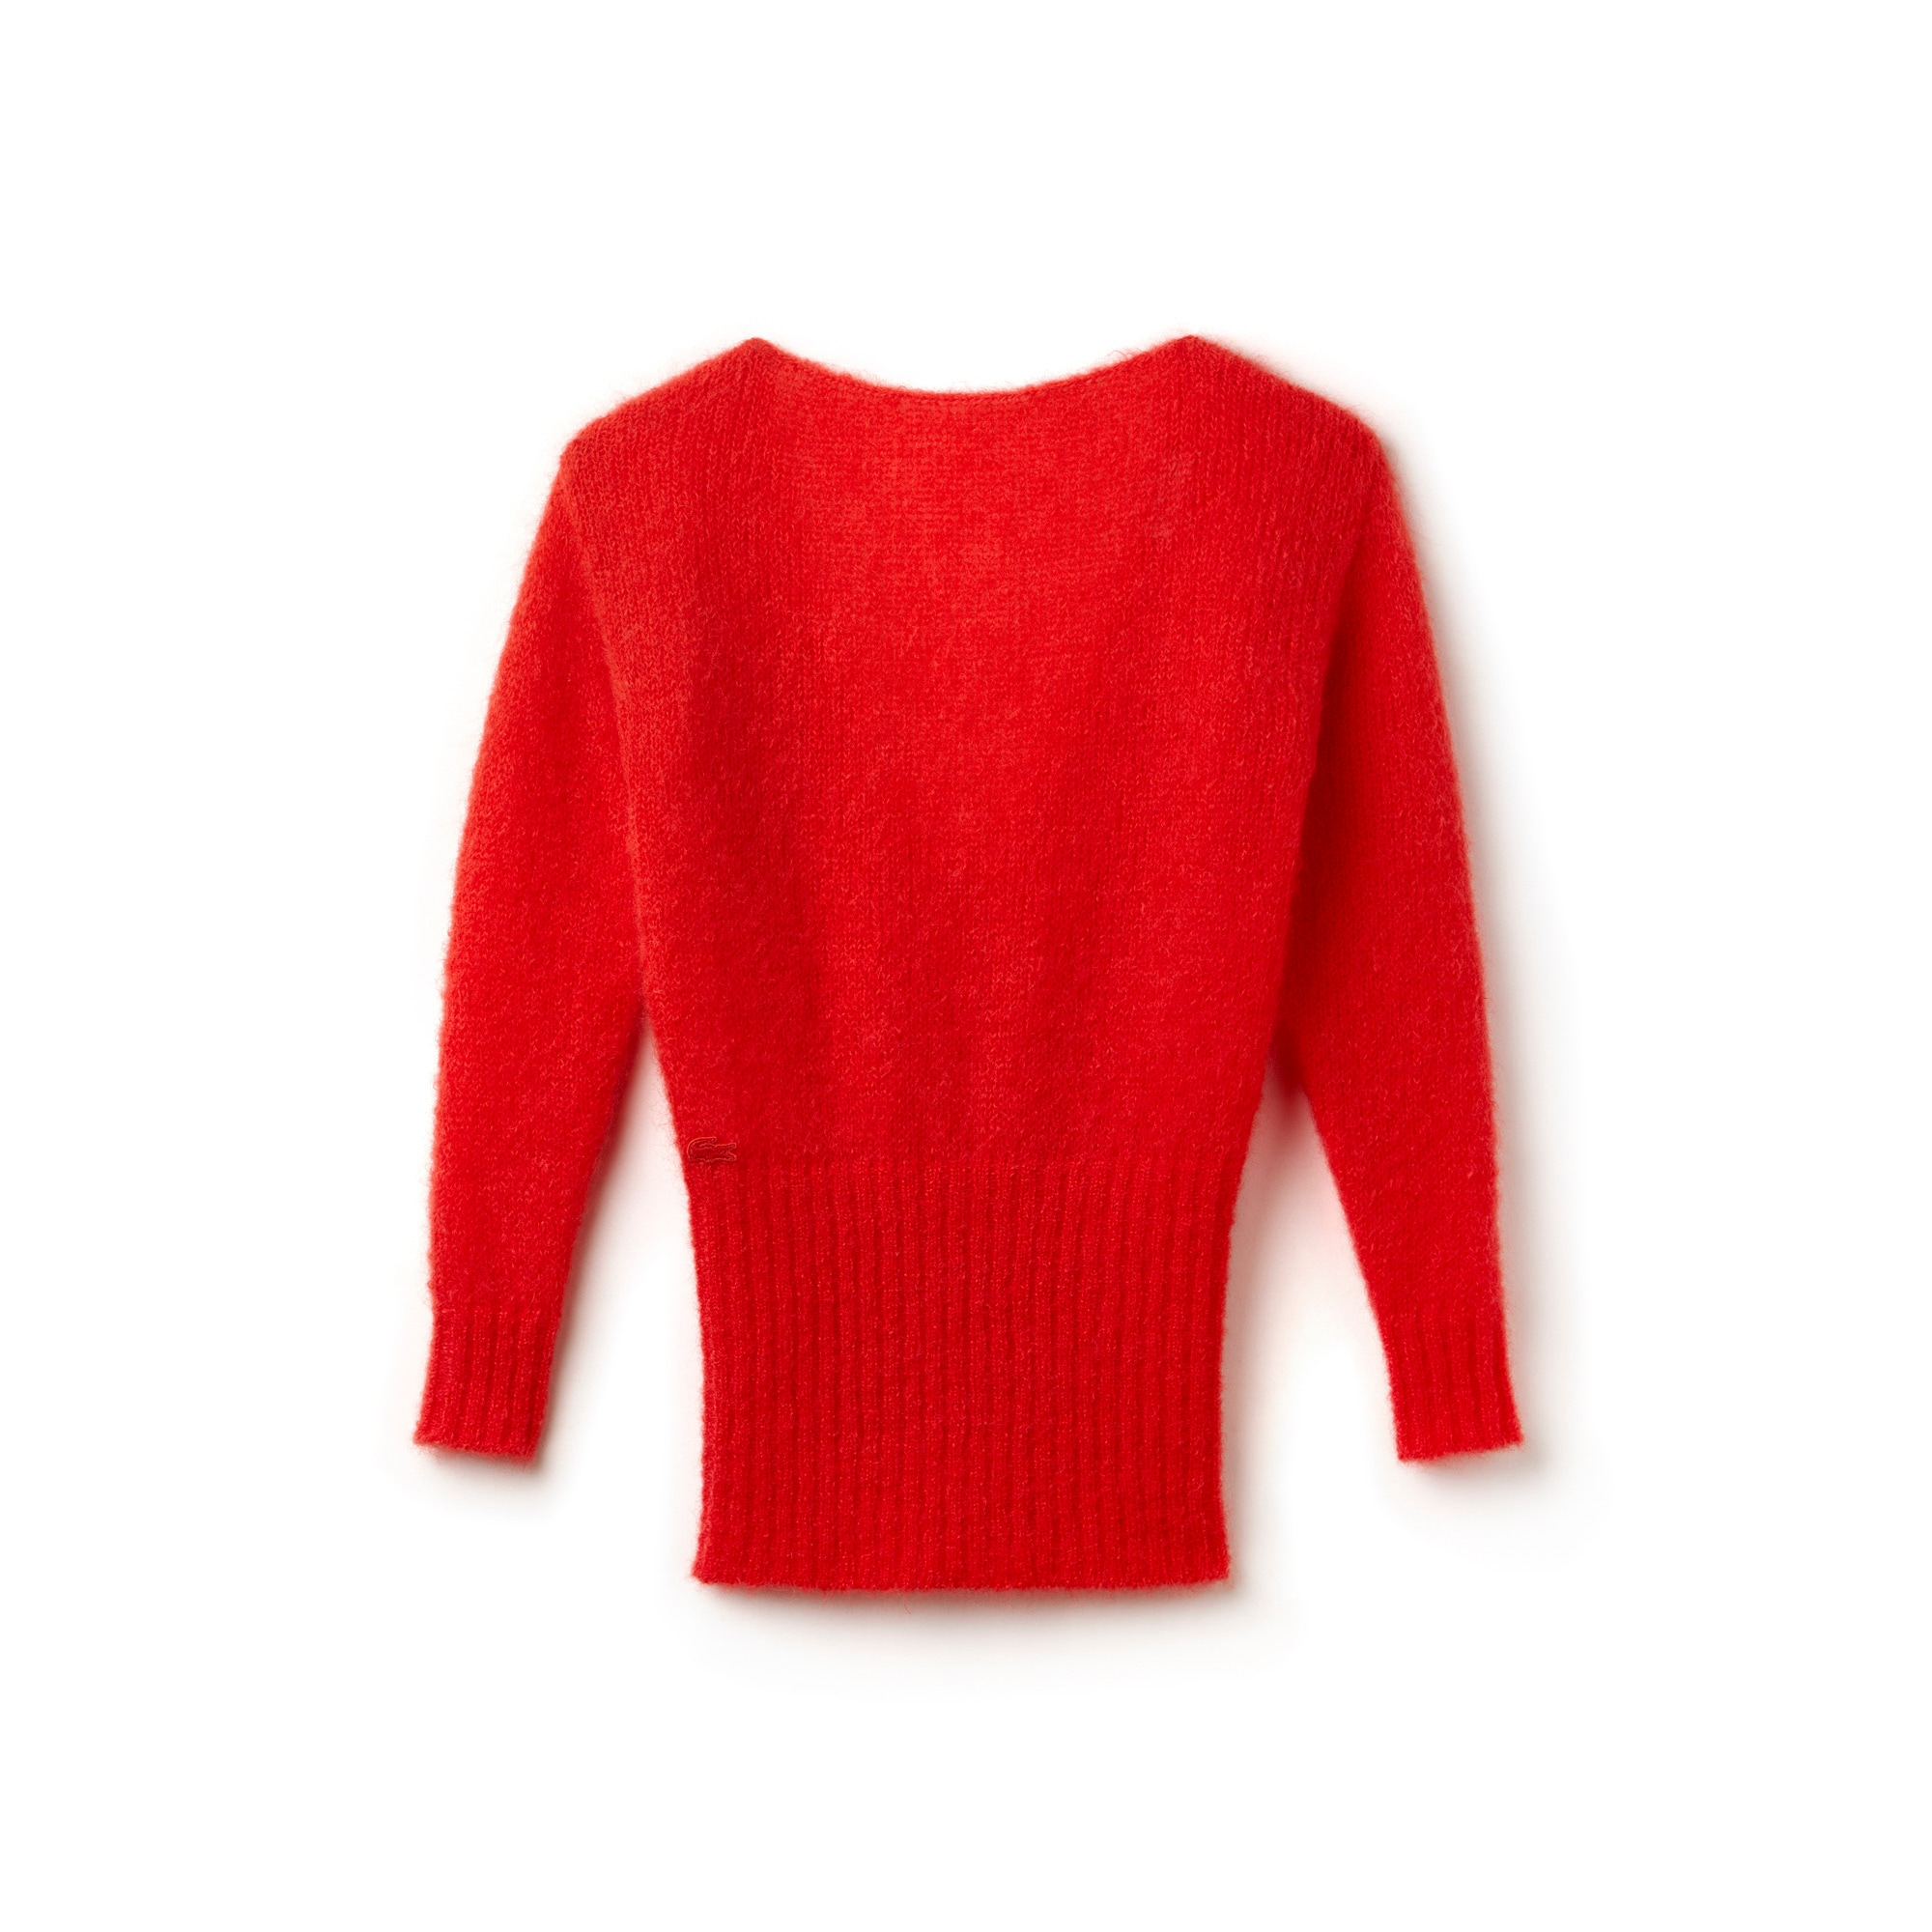 Women's Fashion Show Low Backed Mohair Jersey Sweater